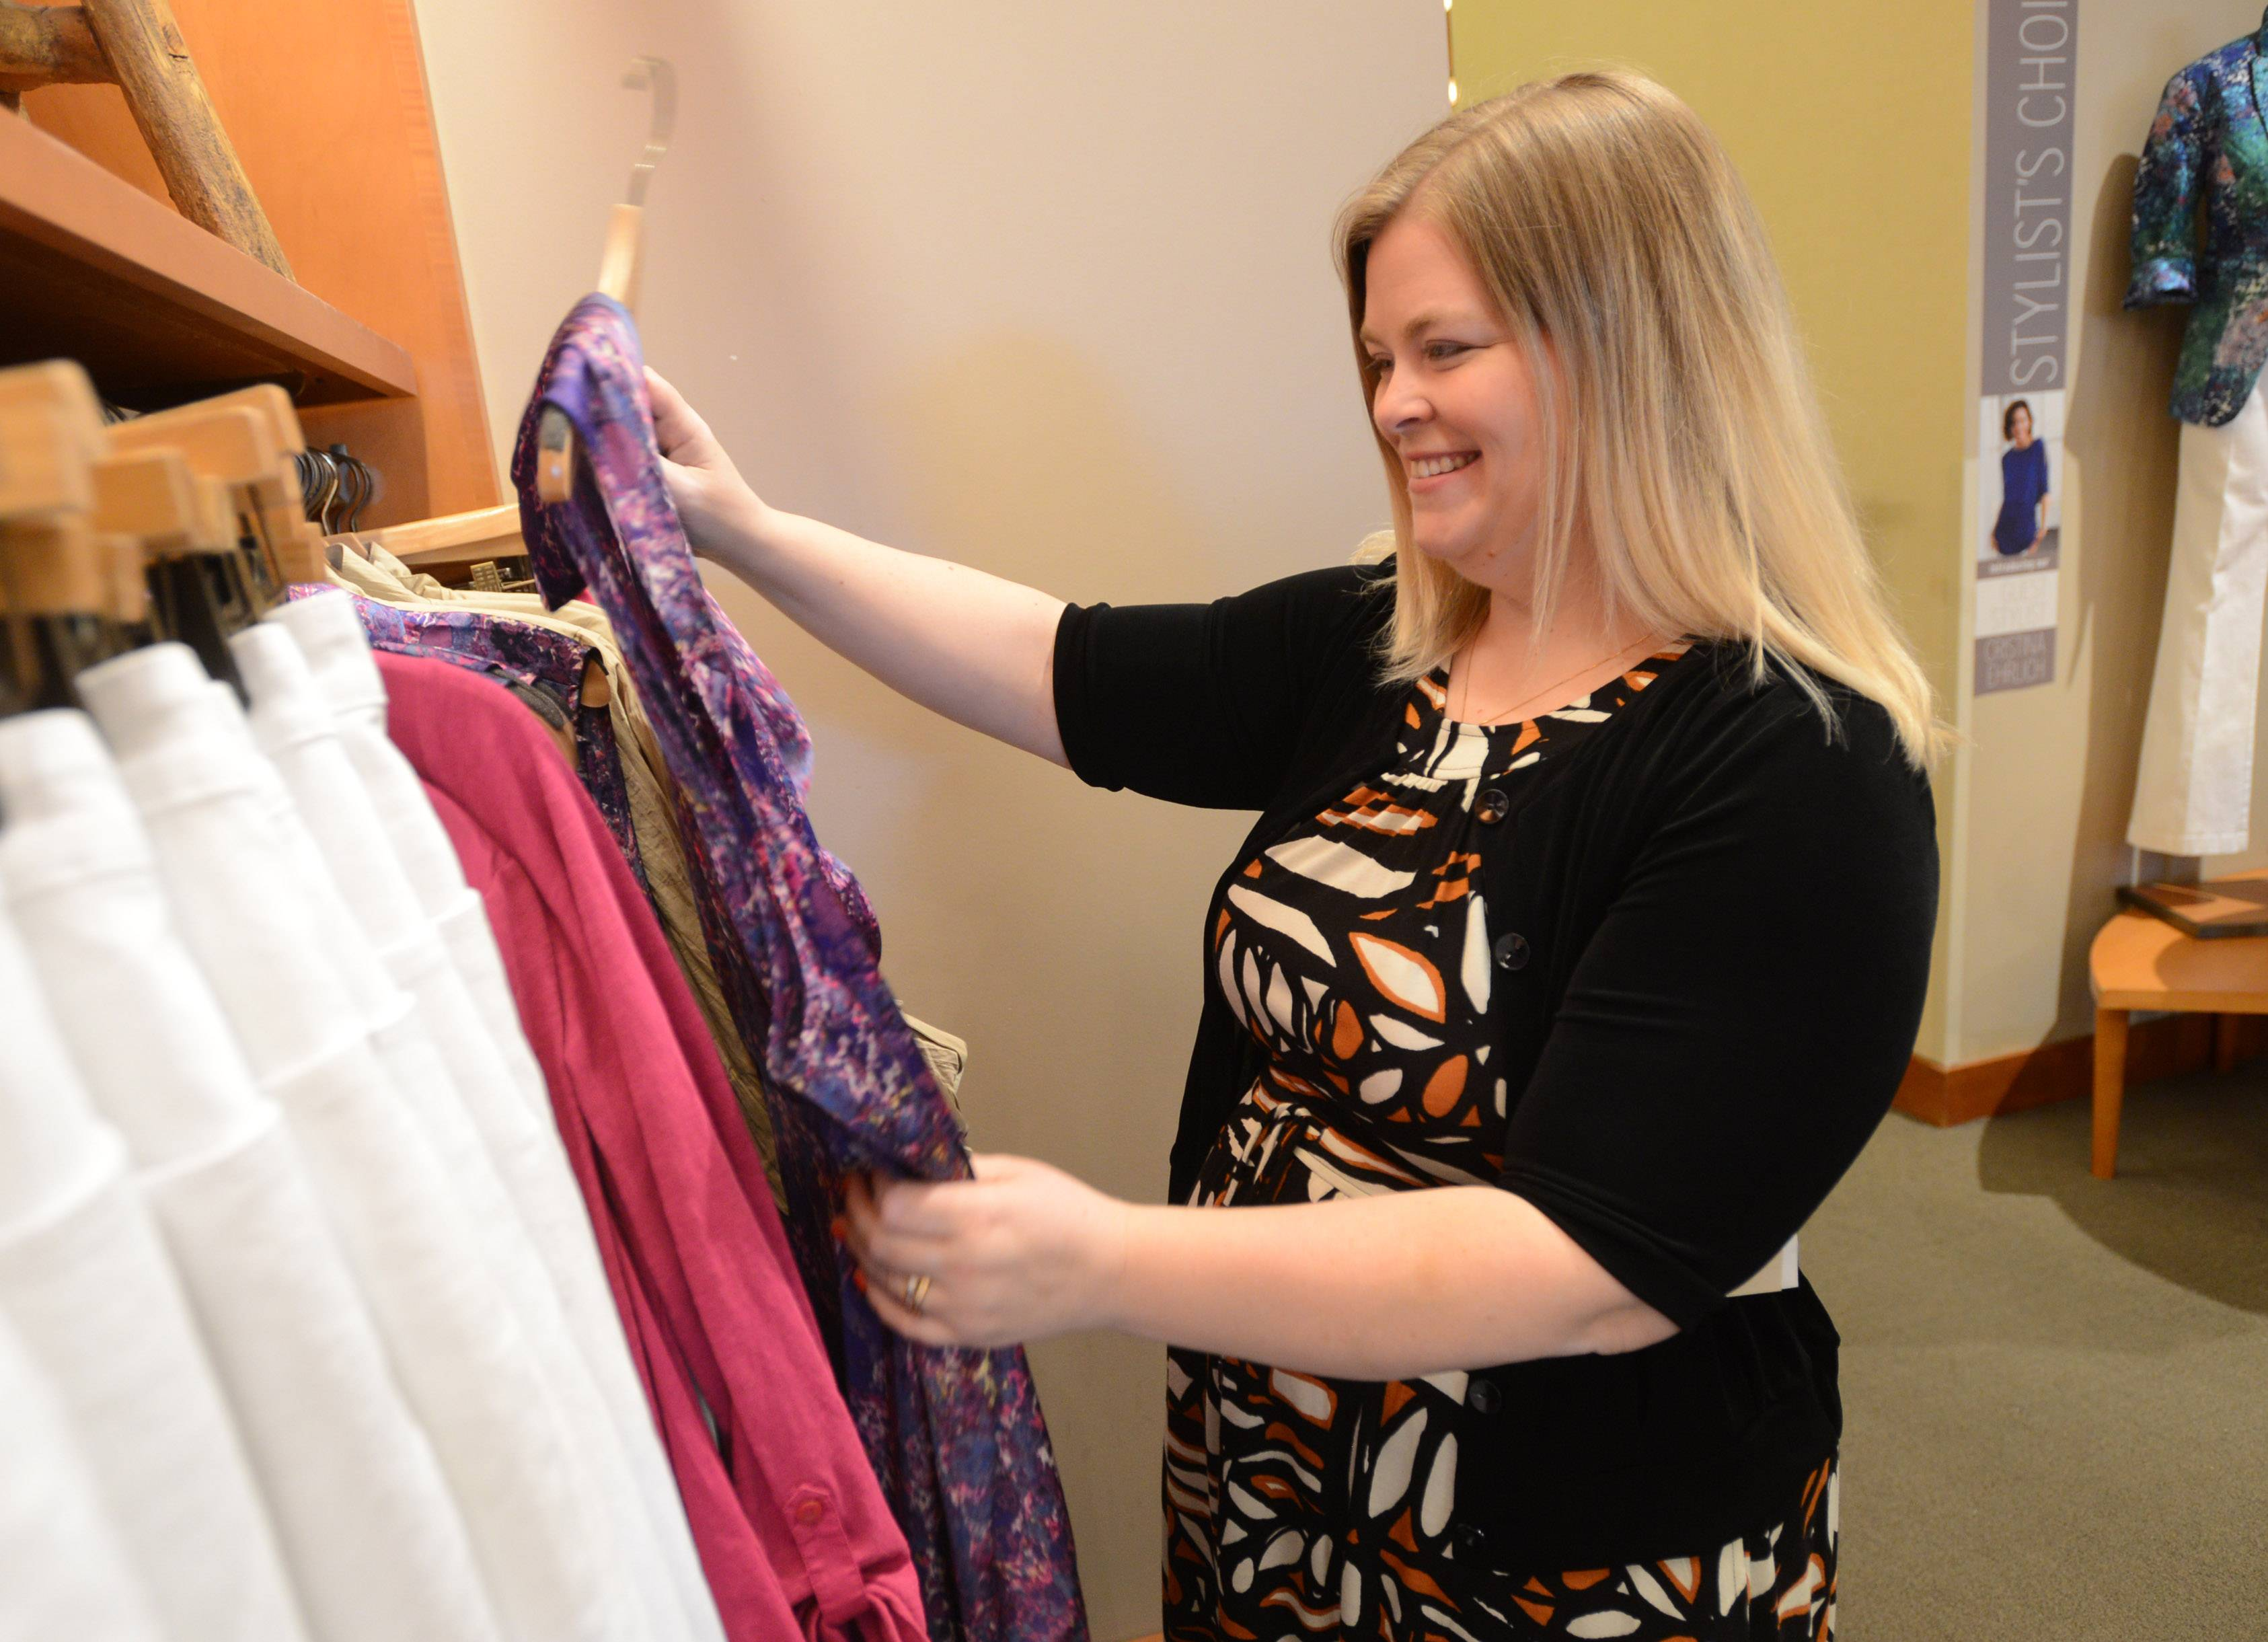 Megan McCarthy-Cook of Hoffman Estates looks for clothes at Deer Park's Coldwater Creek store in this file photo. The Deer Park store, and others owned by Coldwater Creek, will be closing due to the company's bankruptcy.